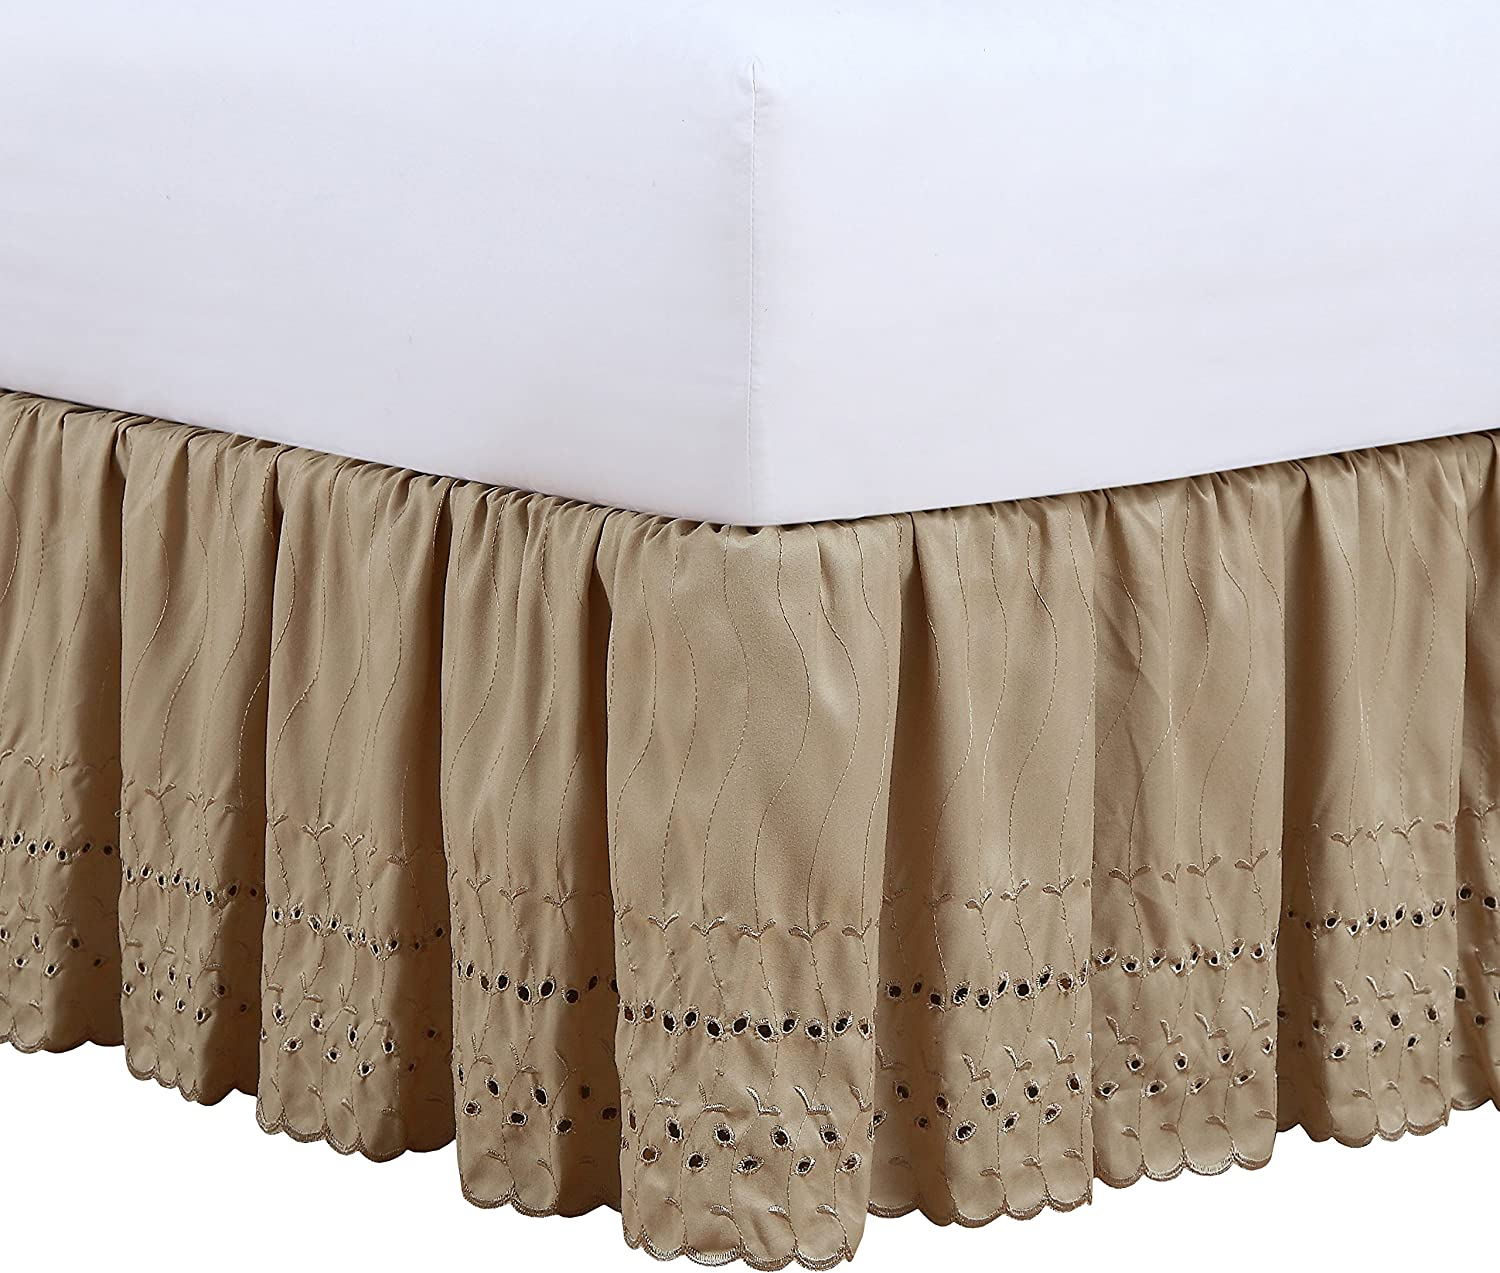 White Fresh Ideas Bedding Eyelet Ruffled Bedskirt Extra Long 18 Drop Length Gathered Styling Queen